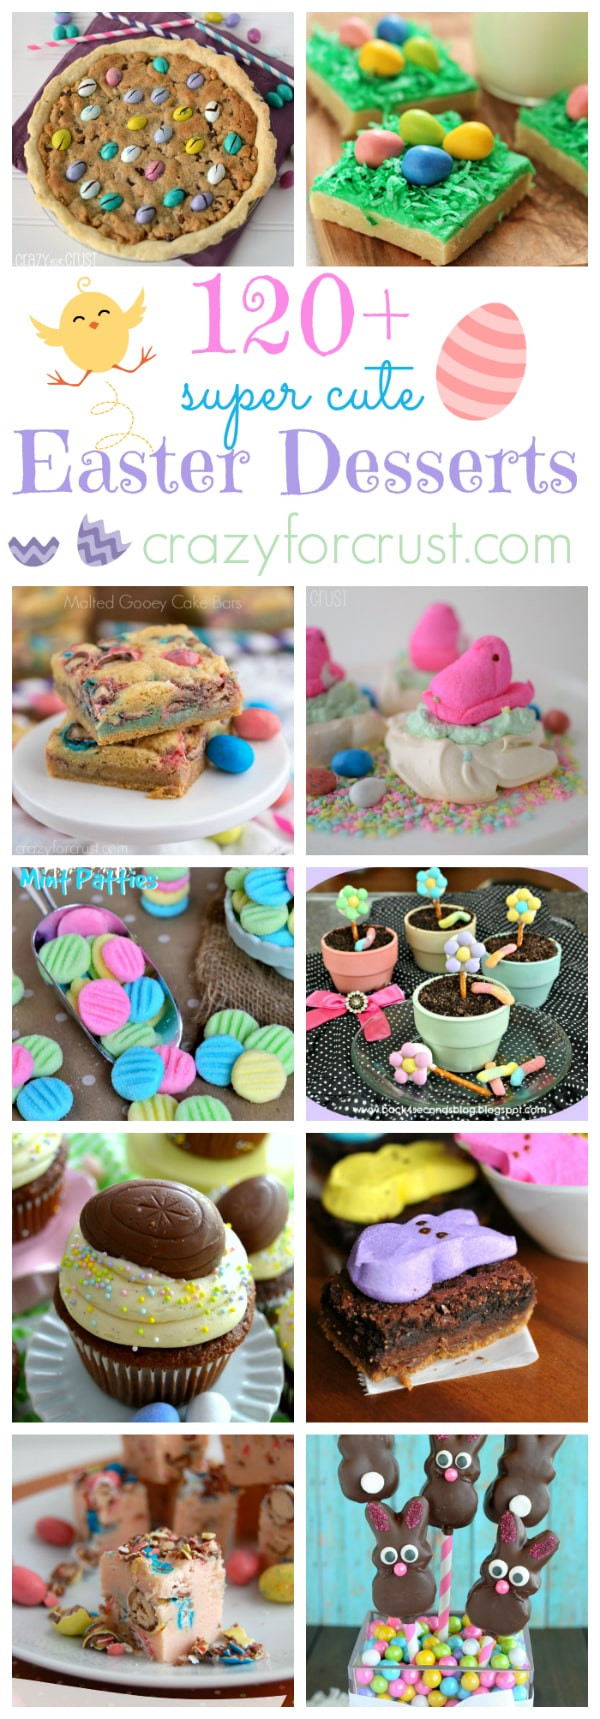 Fun Easter Desserts  Over 120 Fun Easter Desserts Crazy for Crust